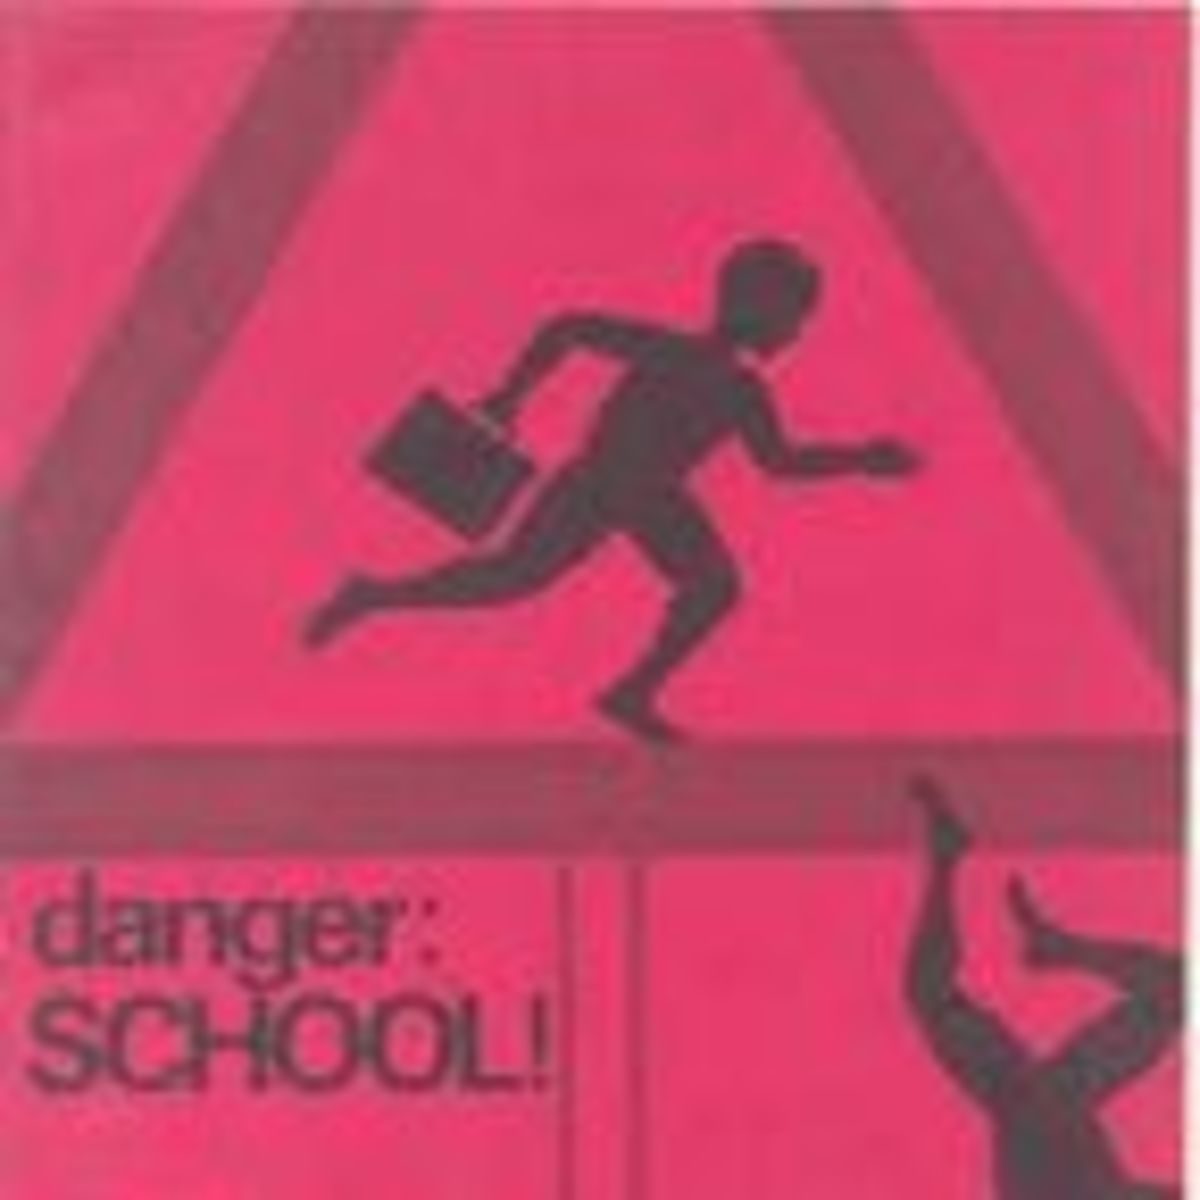 The Danger of Back to School | Psychology Today